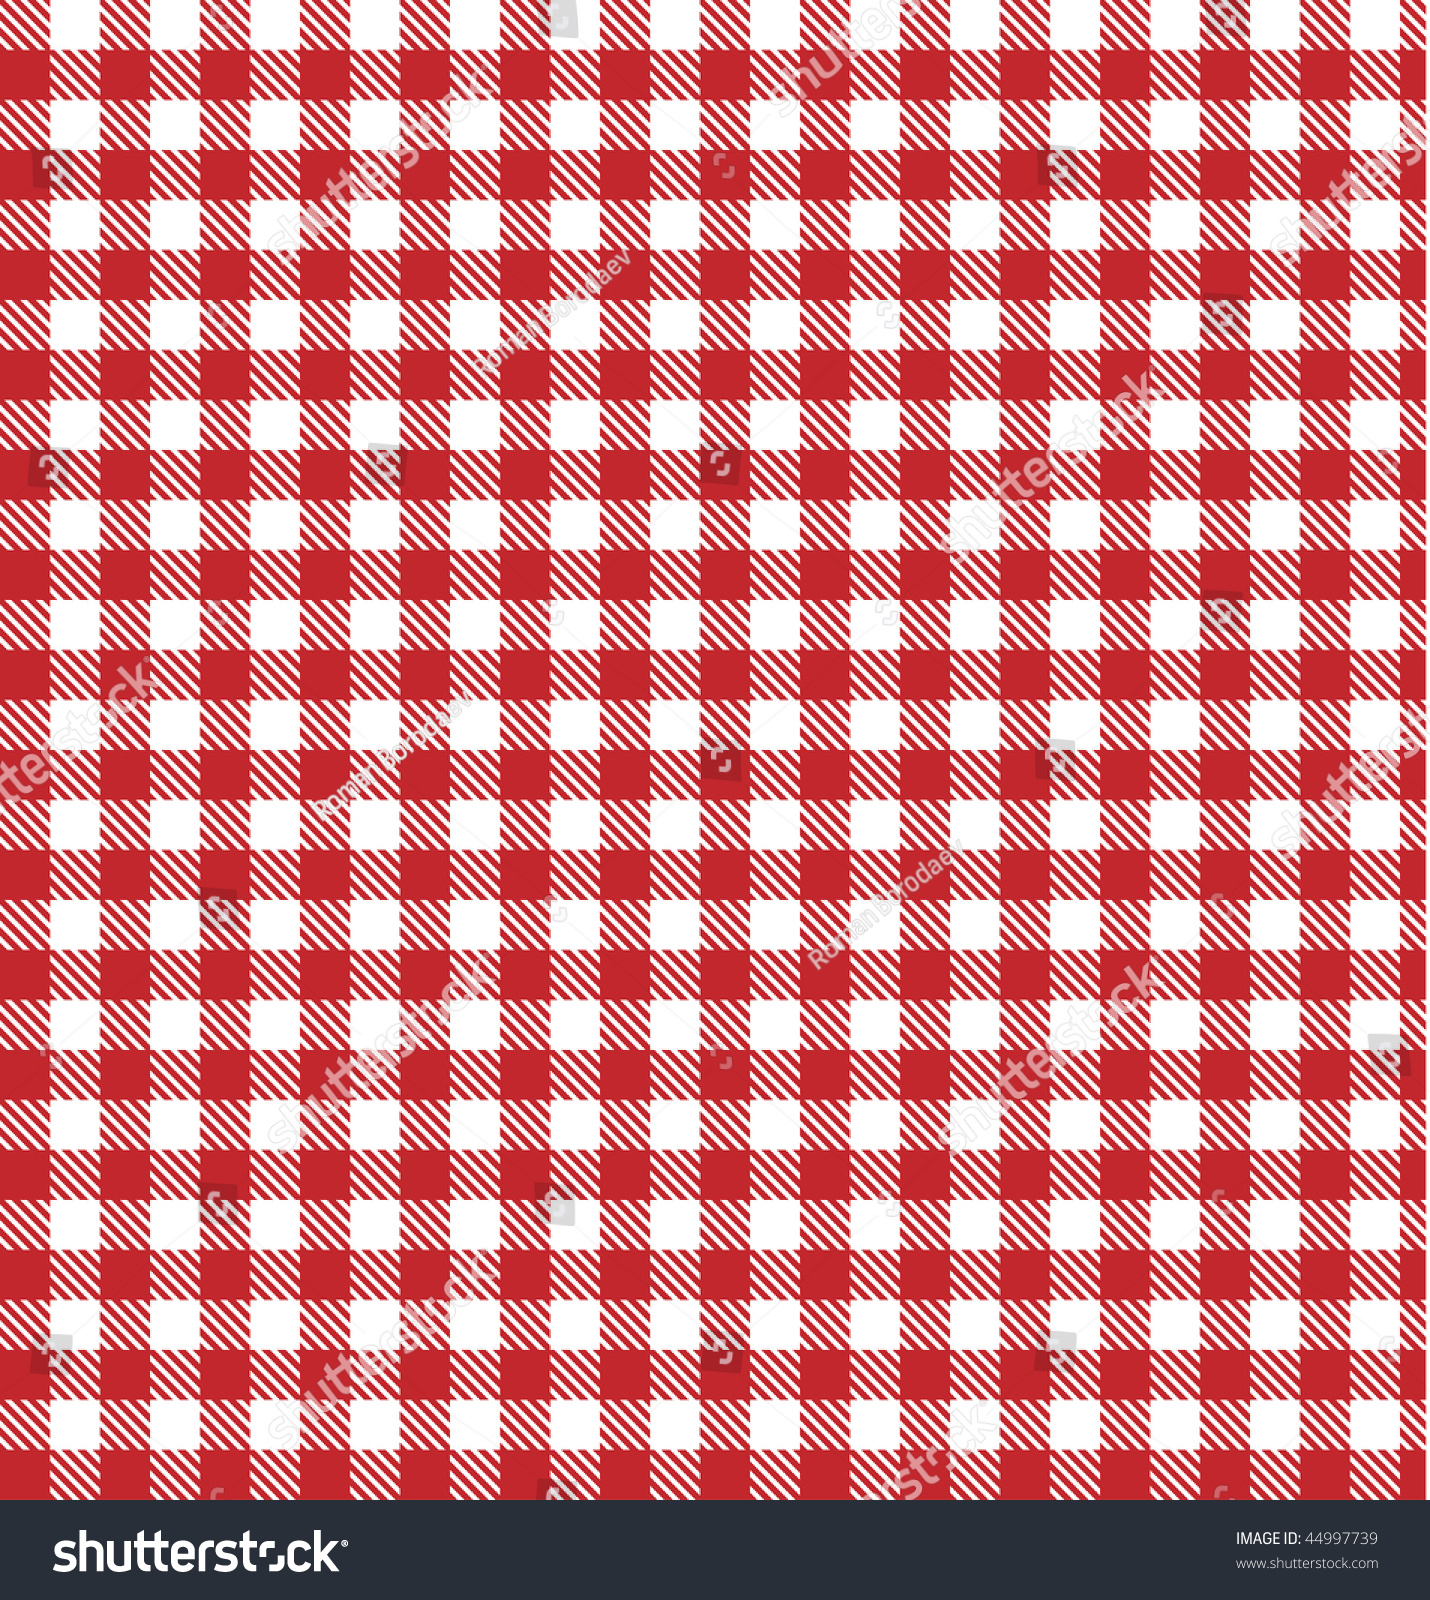 Red Picnic Plaid Table Cloth Pattern. Table Cloth Picnic Plaid Background  Vector. Vichy Picnic